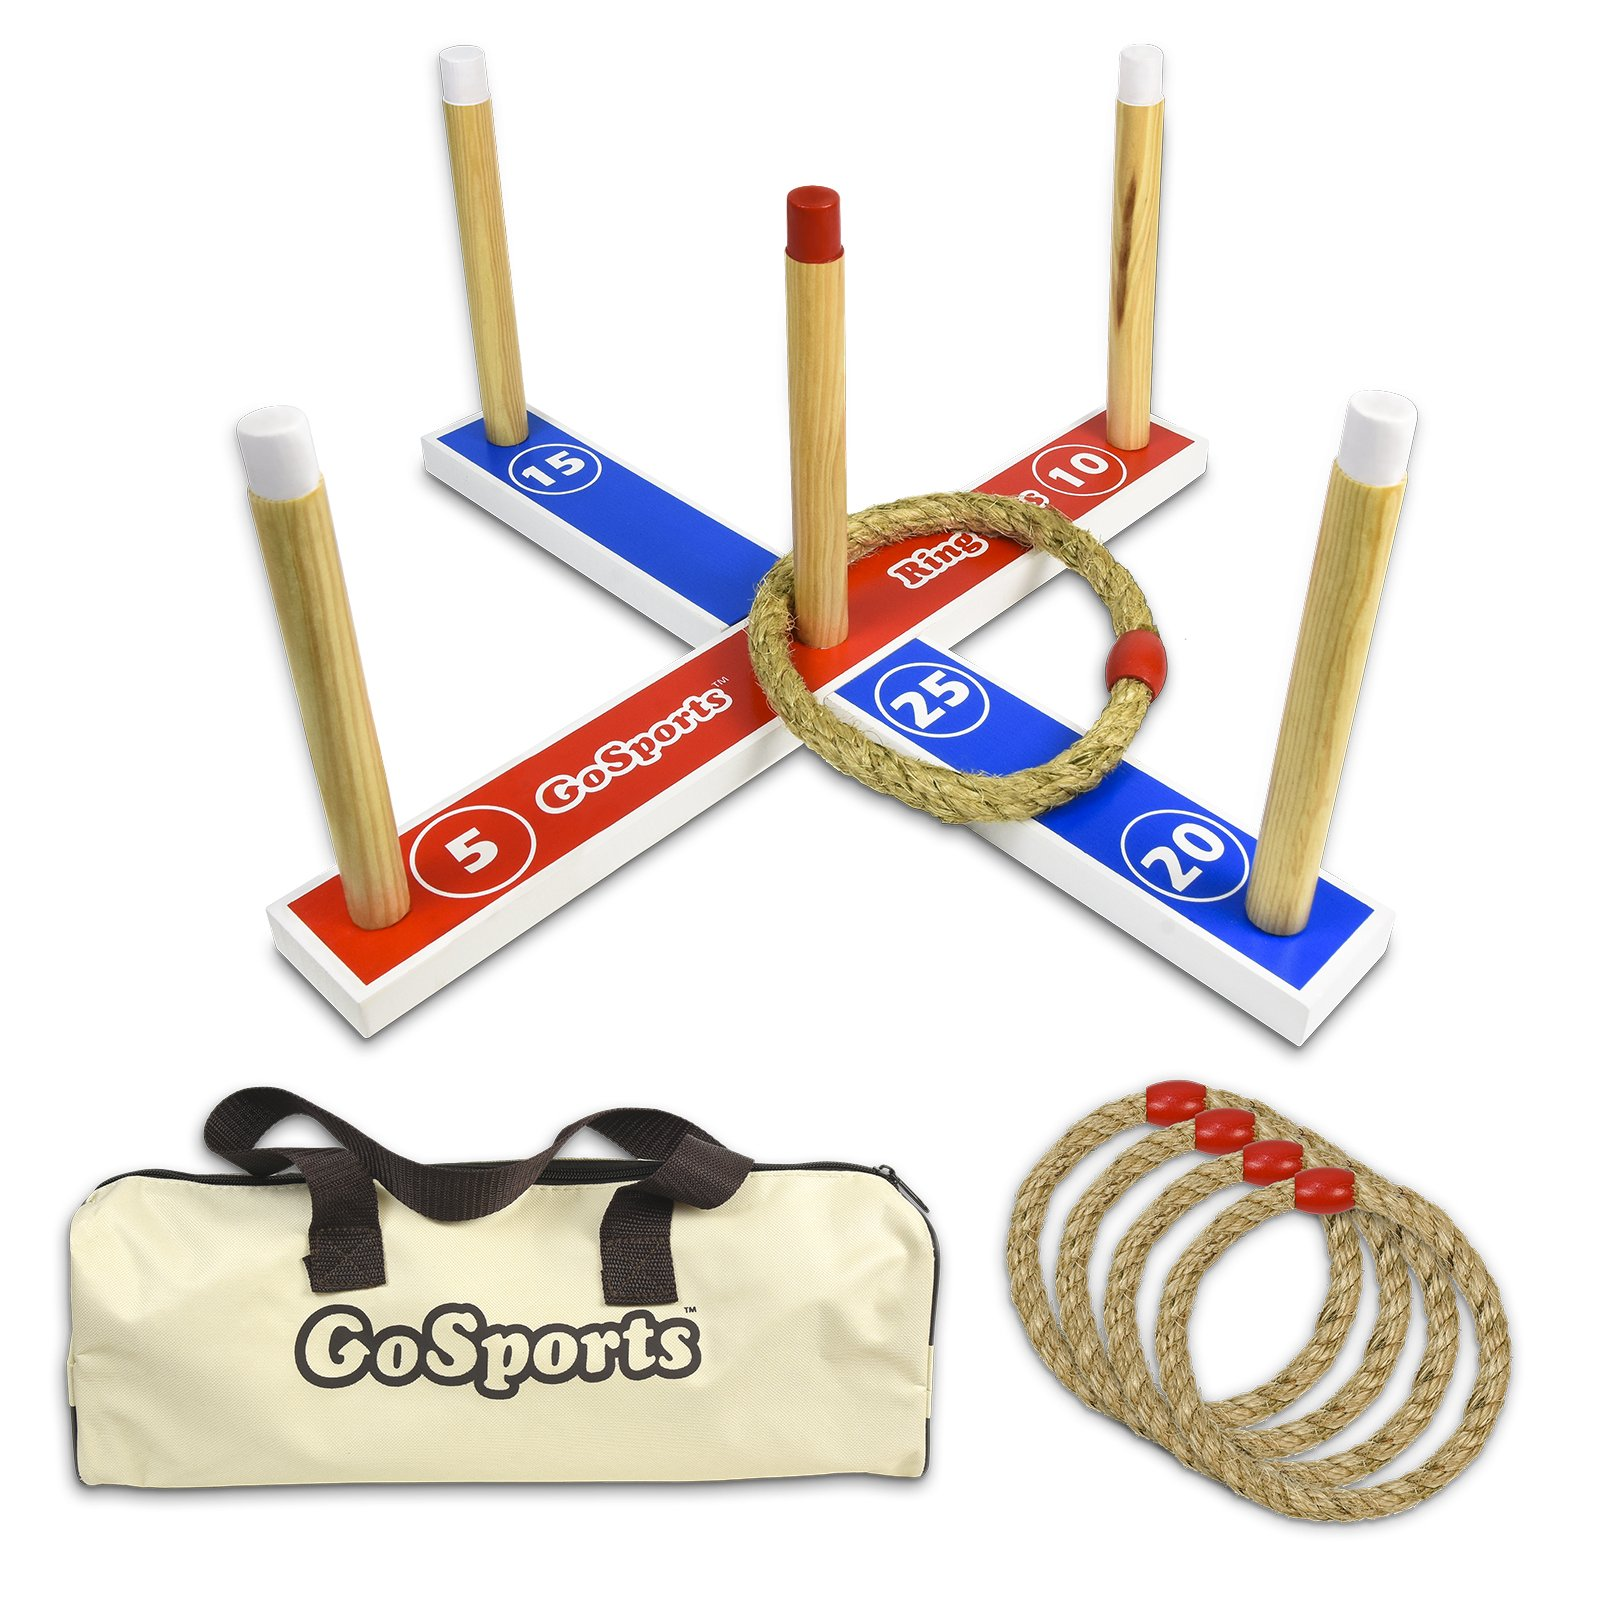 GoSports Premium Wooden Ring Toss Game with Carrying Case, Great for all Ages by GoSports